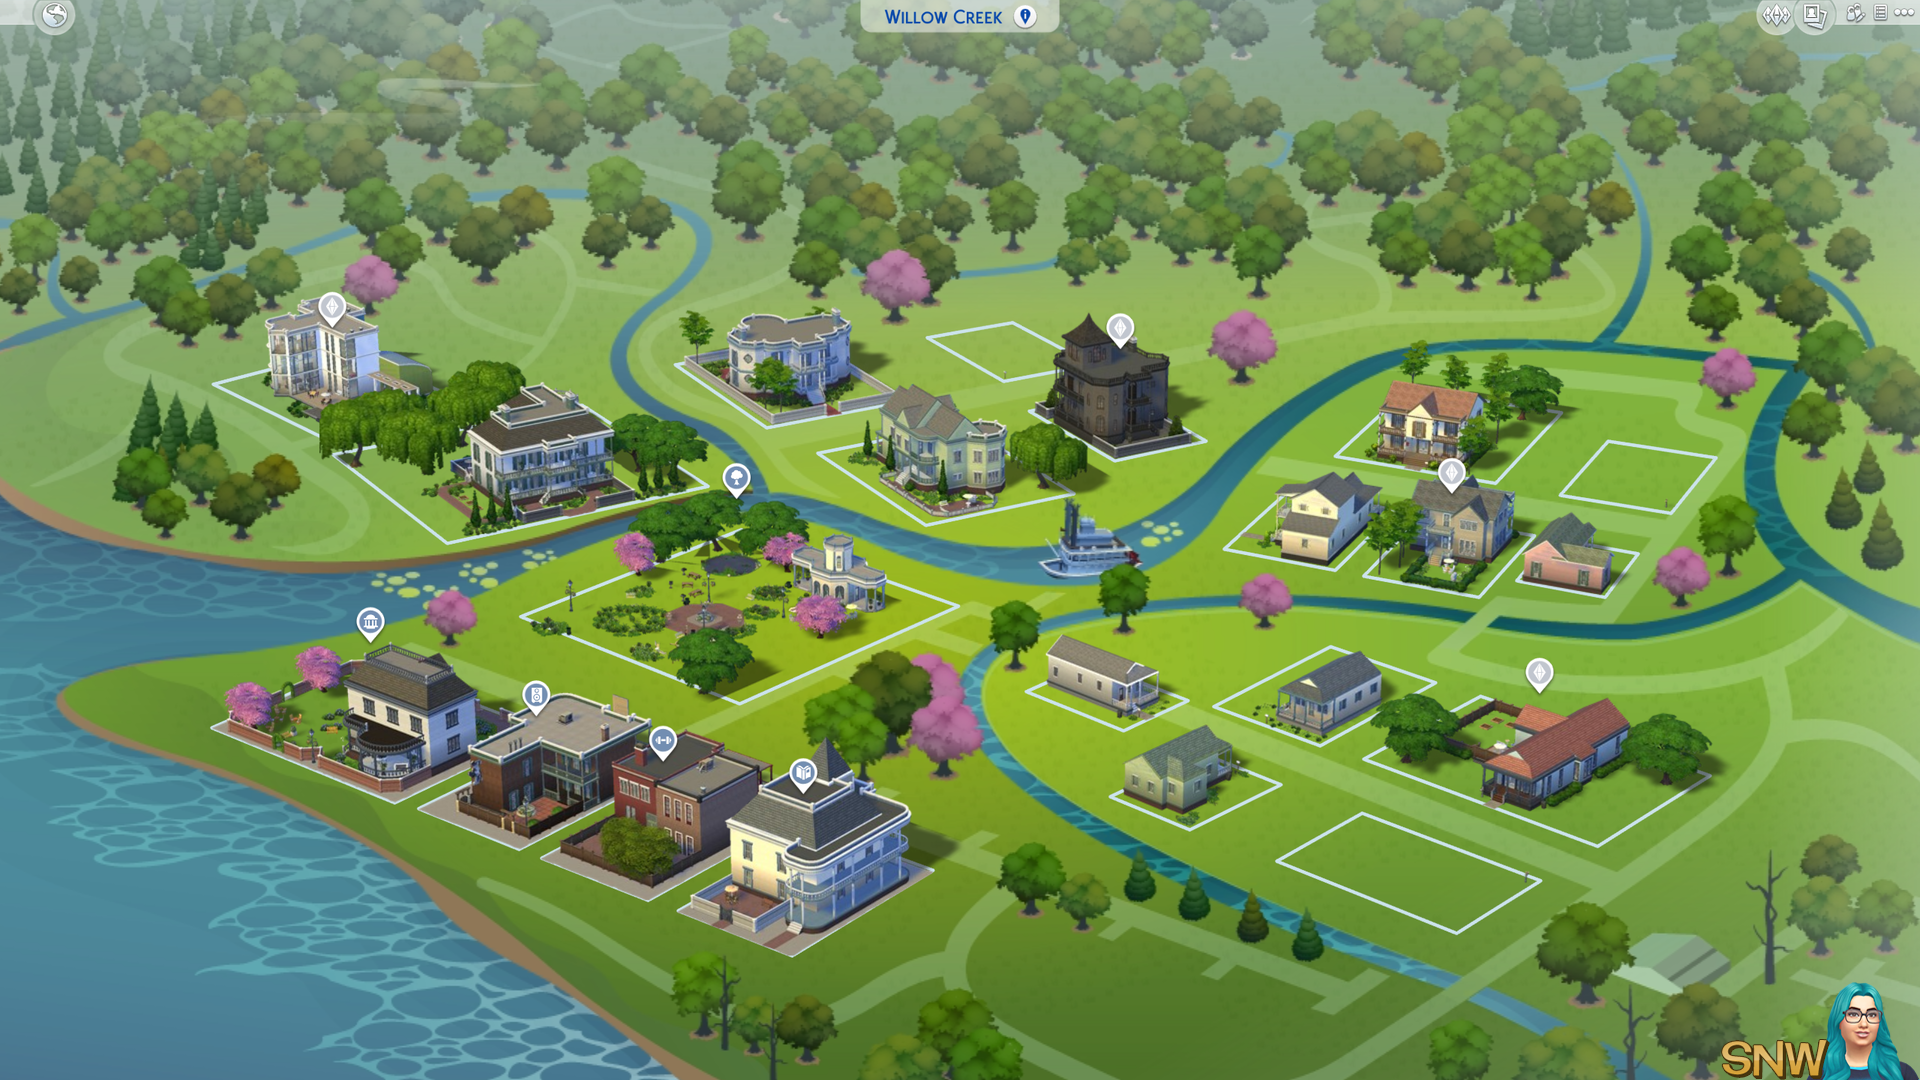 The Sims 4: Willow Creek world